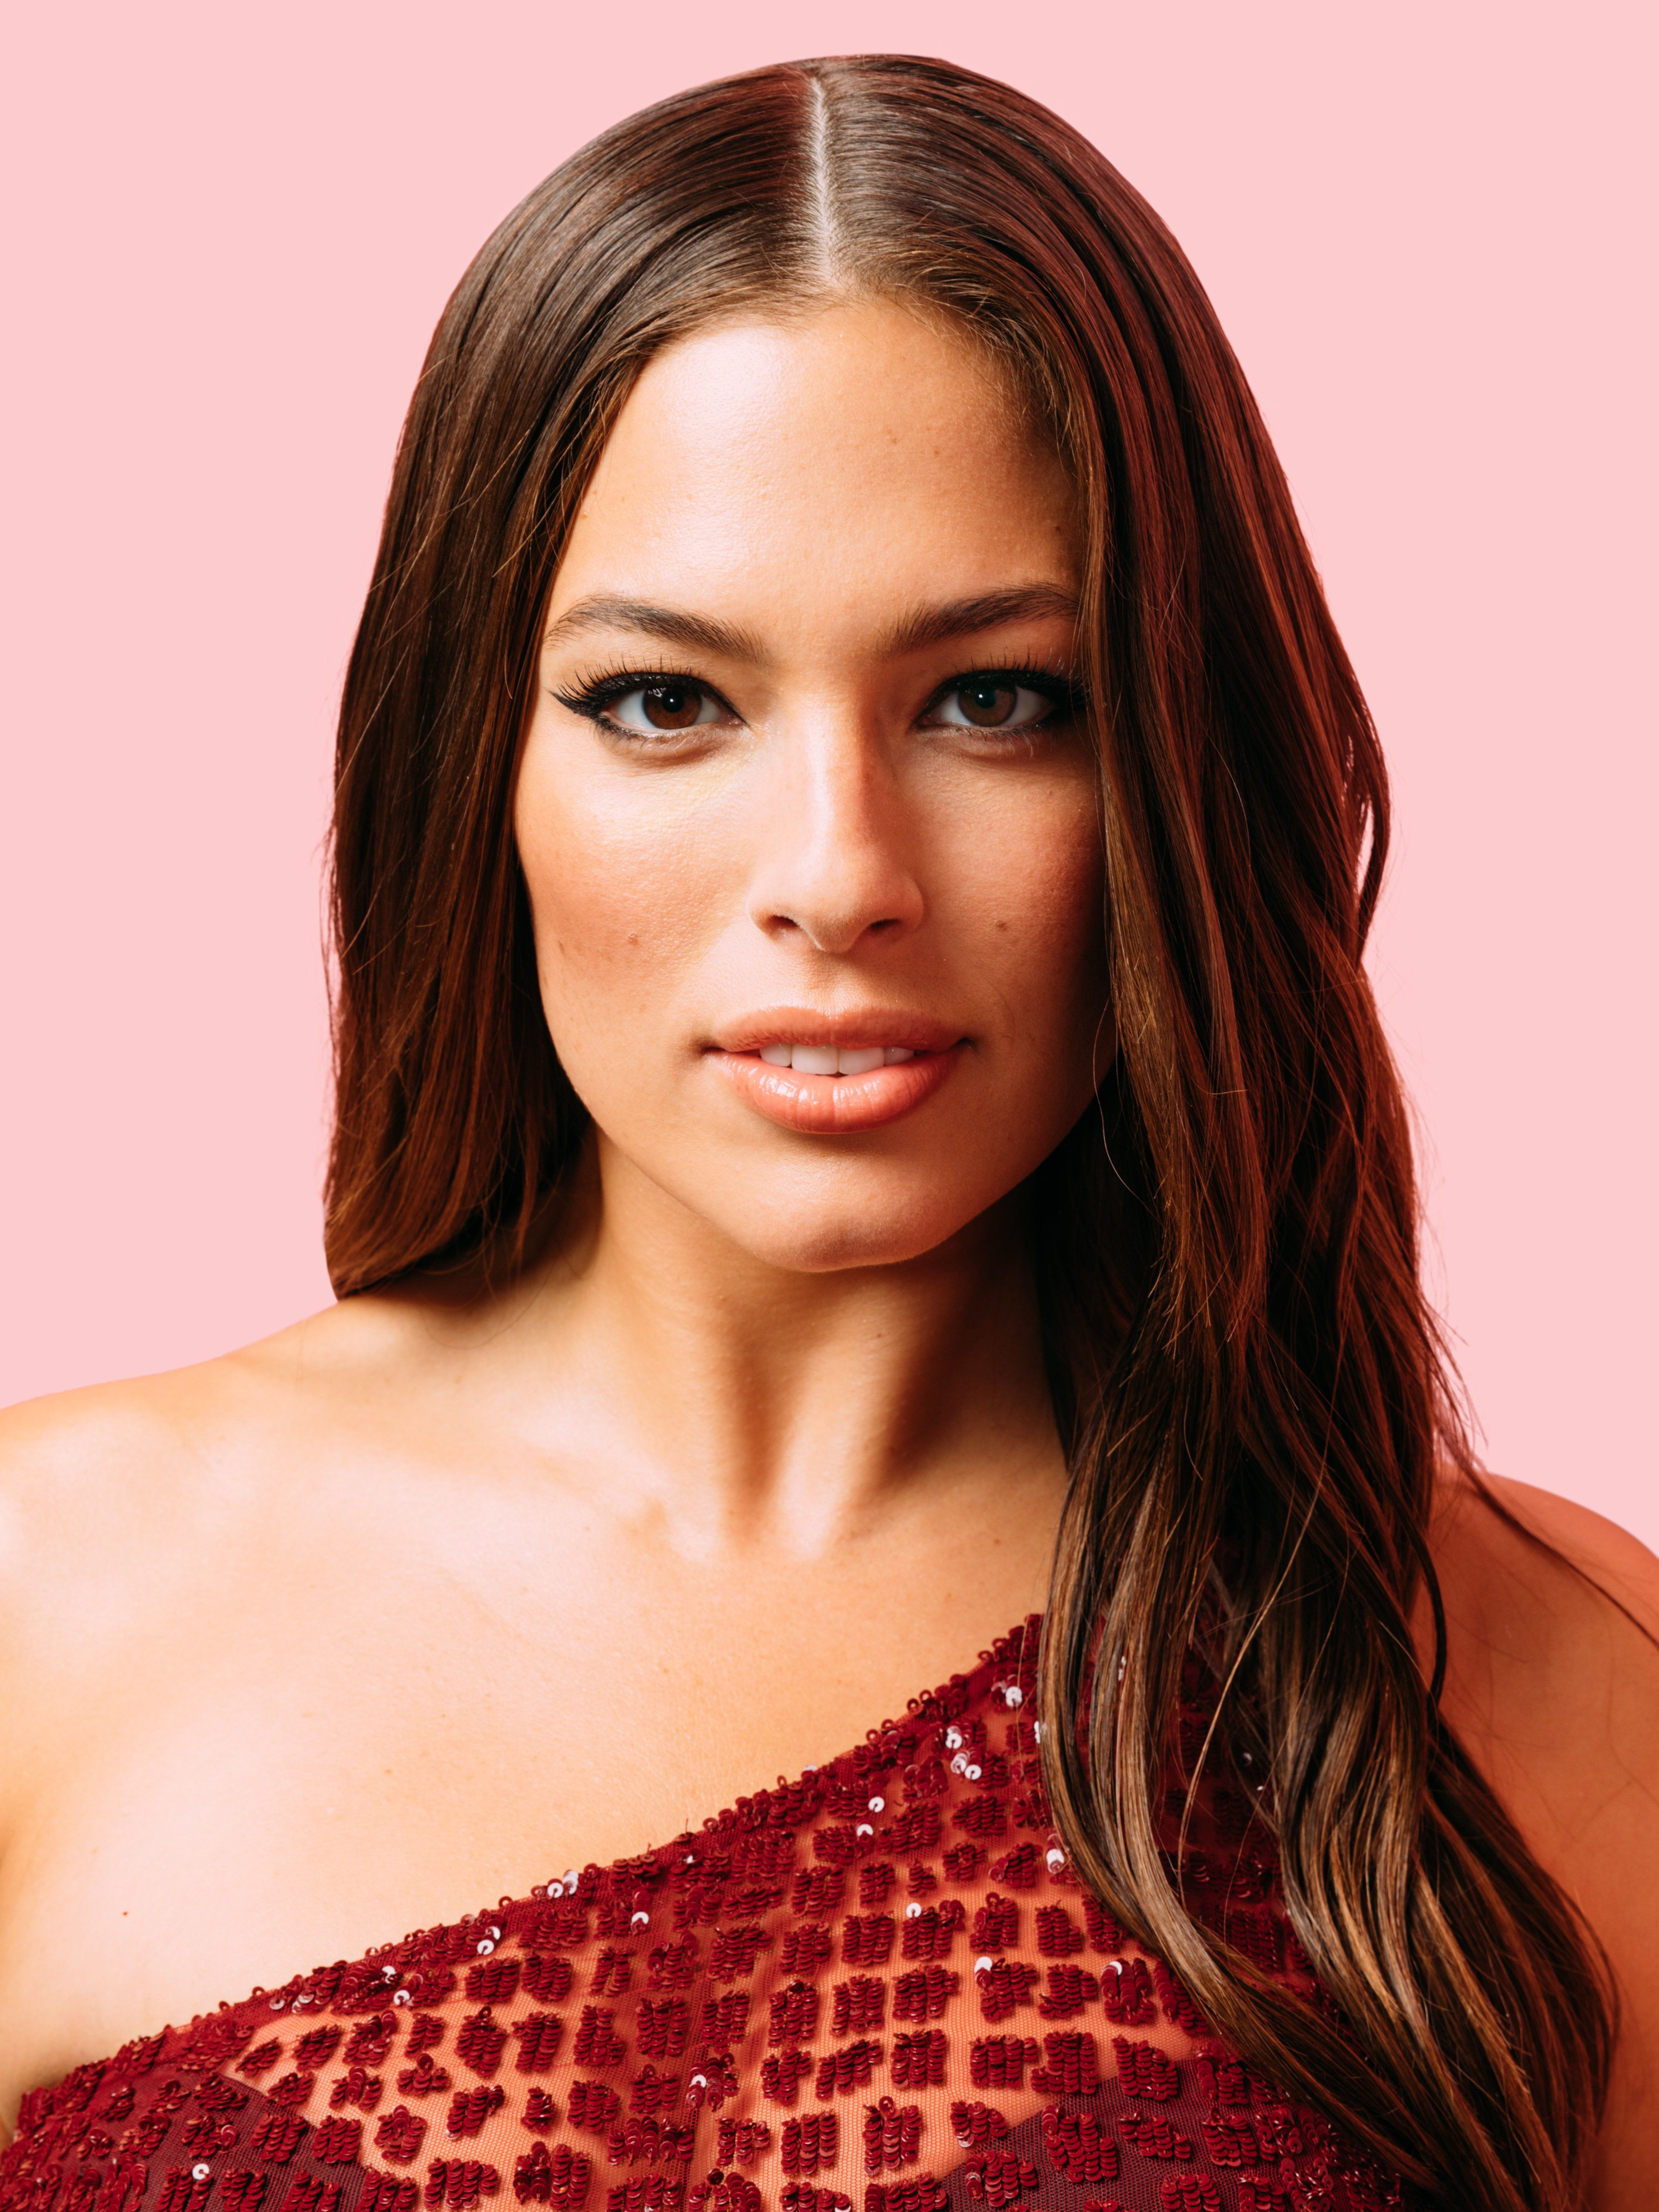 NEW YORK, NY - SEPTEMBER 08:  Model Ashley Graham poses for a portrait during the Daily Front Row's Fashion Media Awards at Four Seasons Hotel New York Downtown on September 8, 2017 in New York City.  (Photo by Zack DeZon/Getty Images)